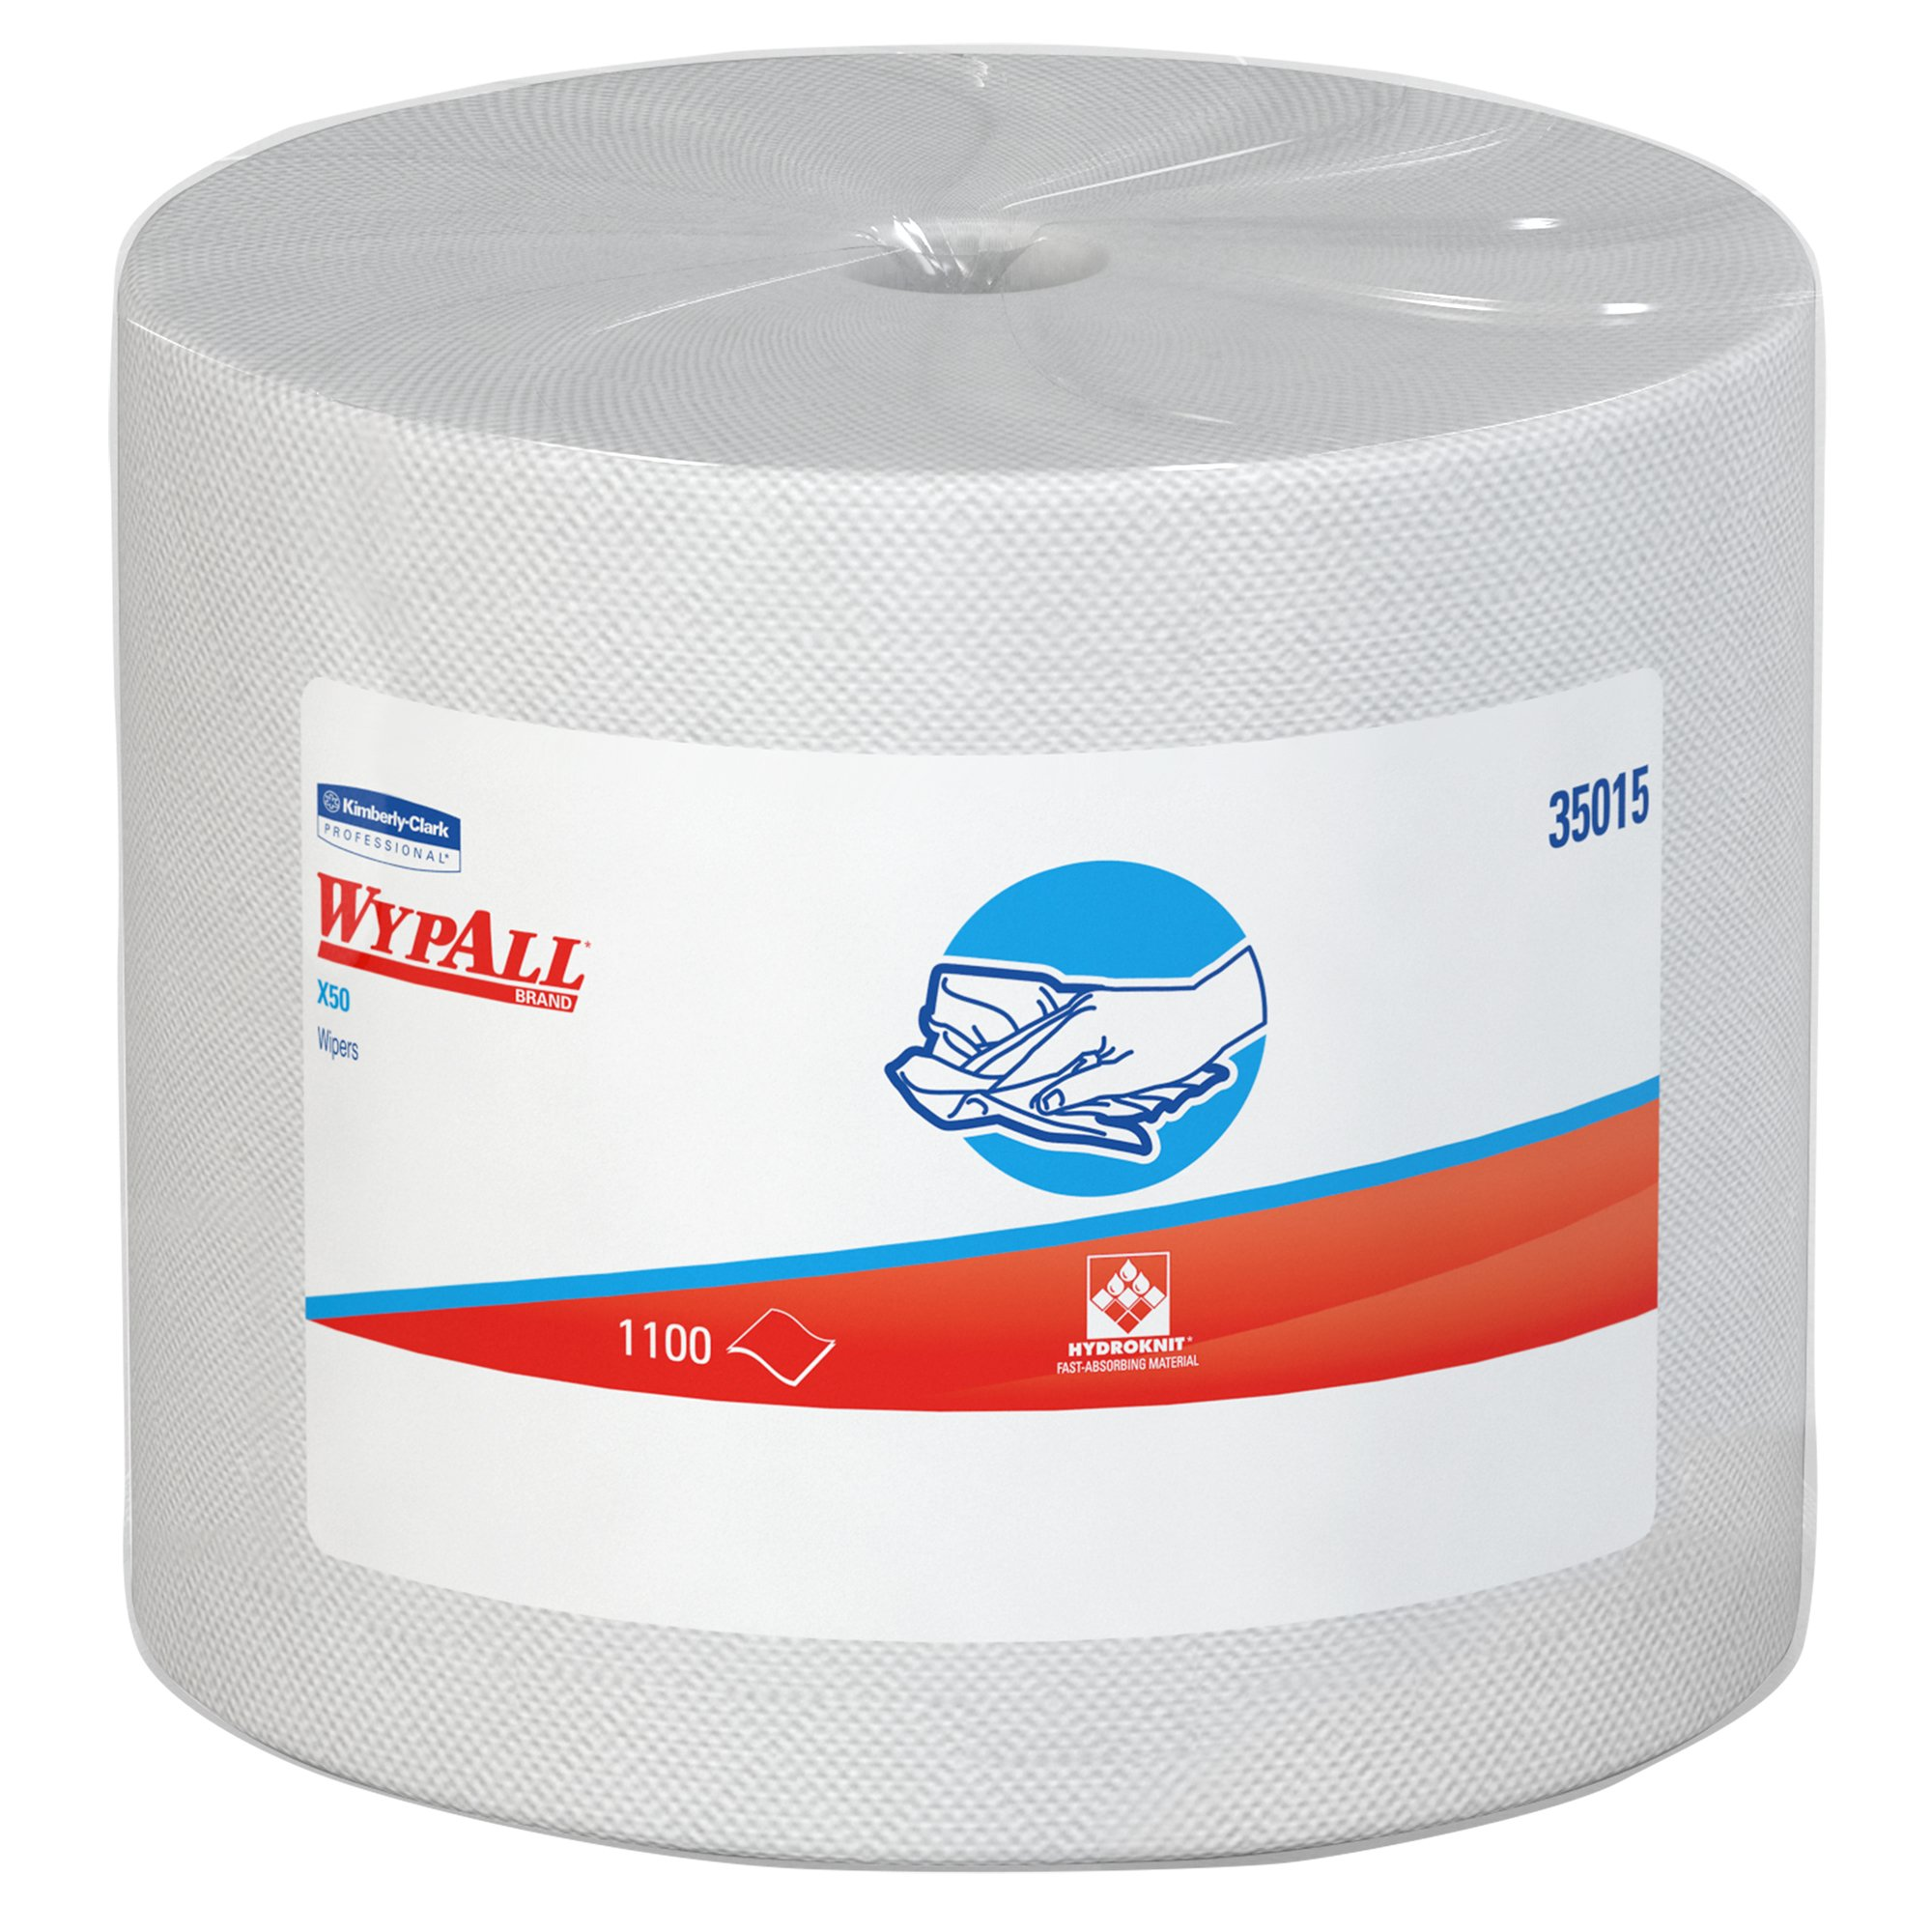 Wypall X50 Disposable Cloths (35015), Strong for Extended Use, Jumbo Roll, White, 1,100 Sheets/Roll